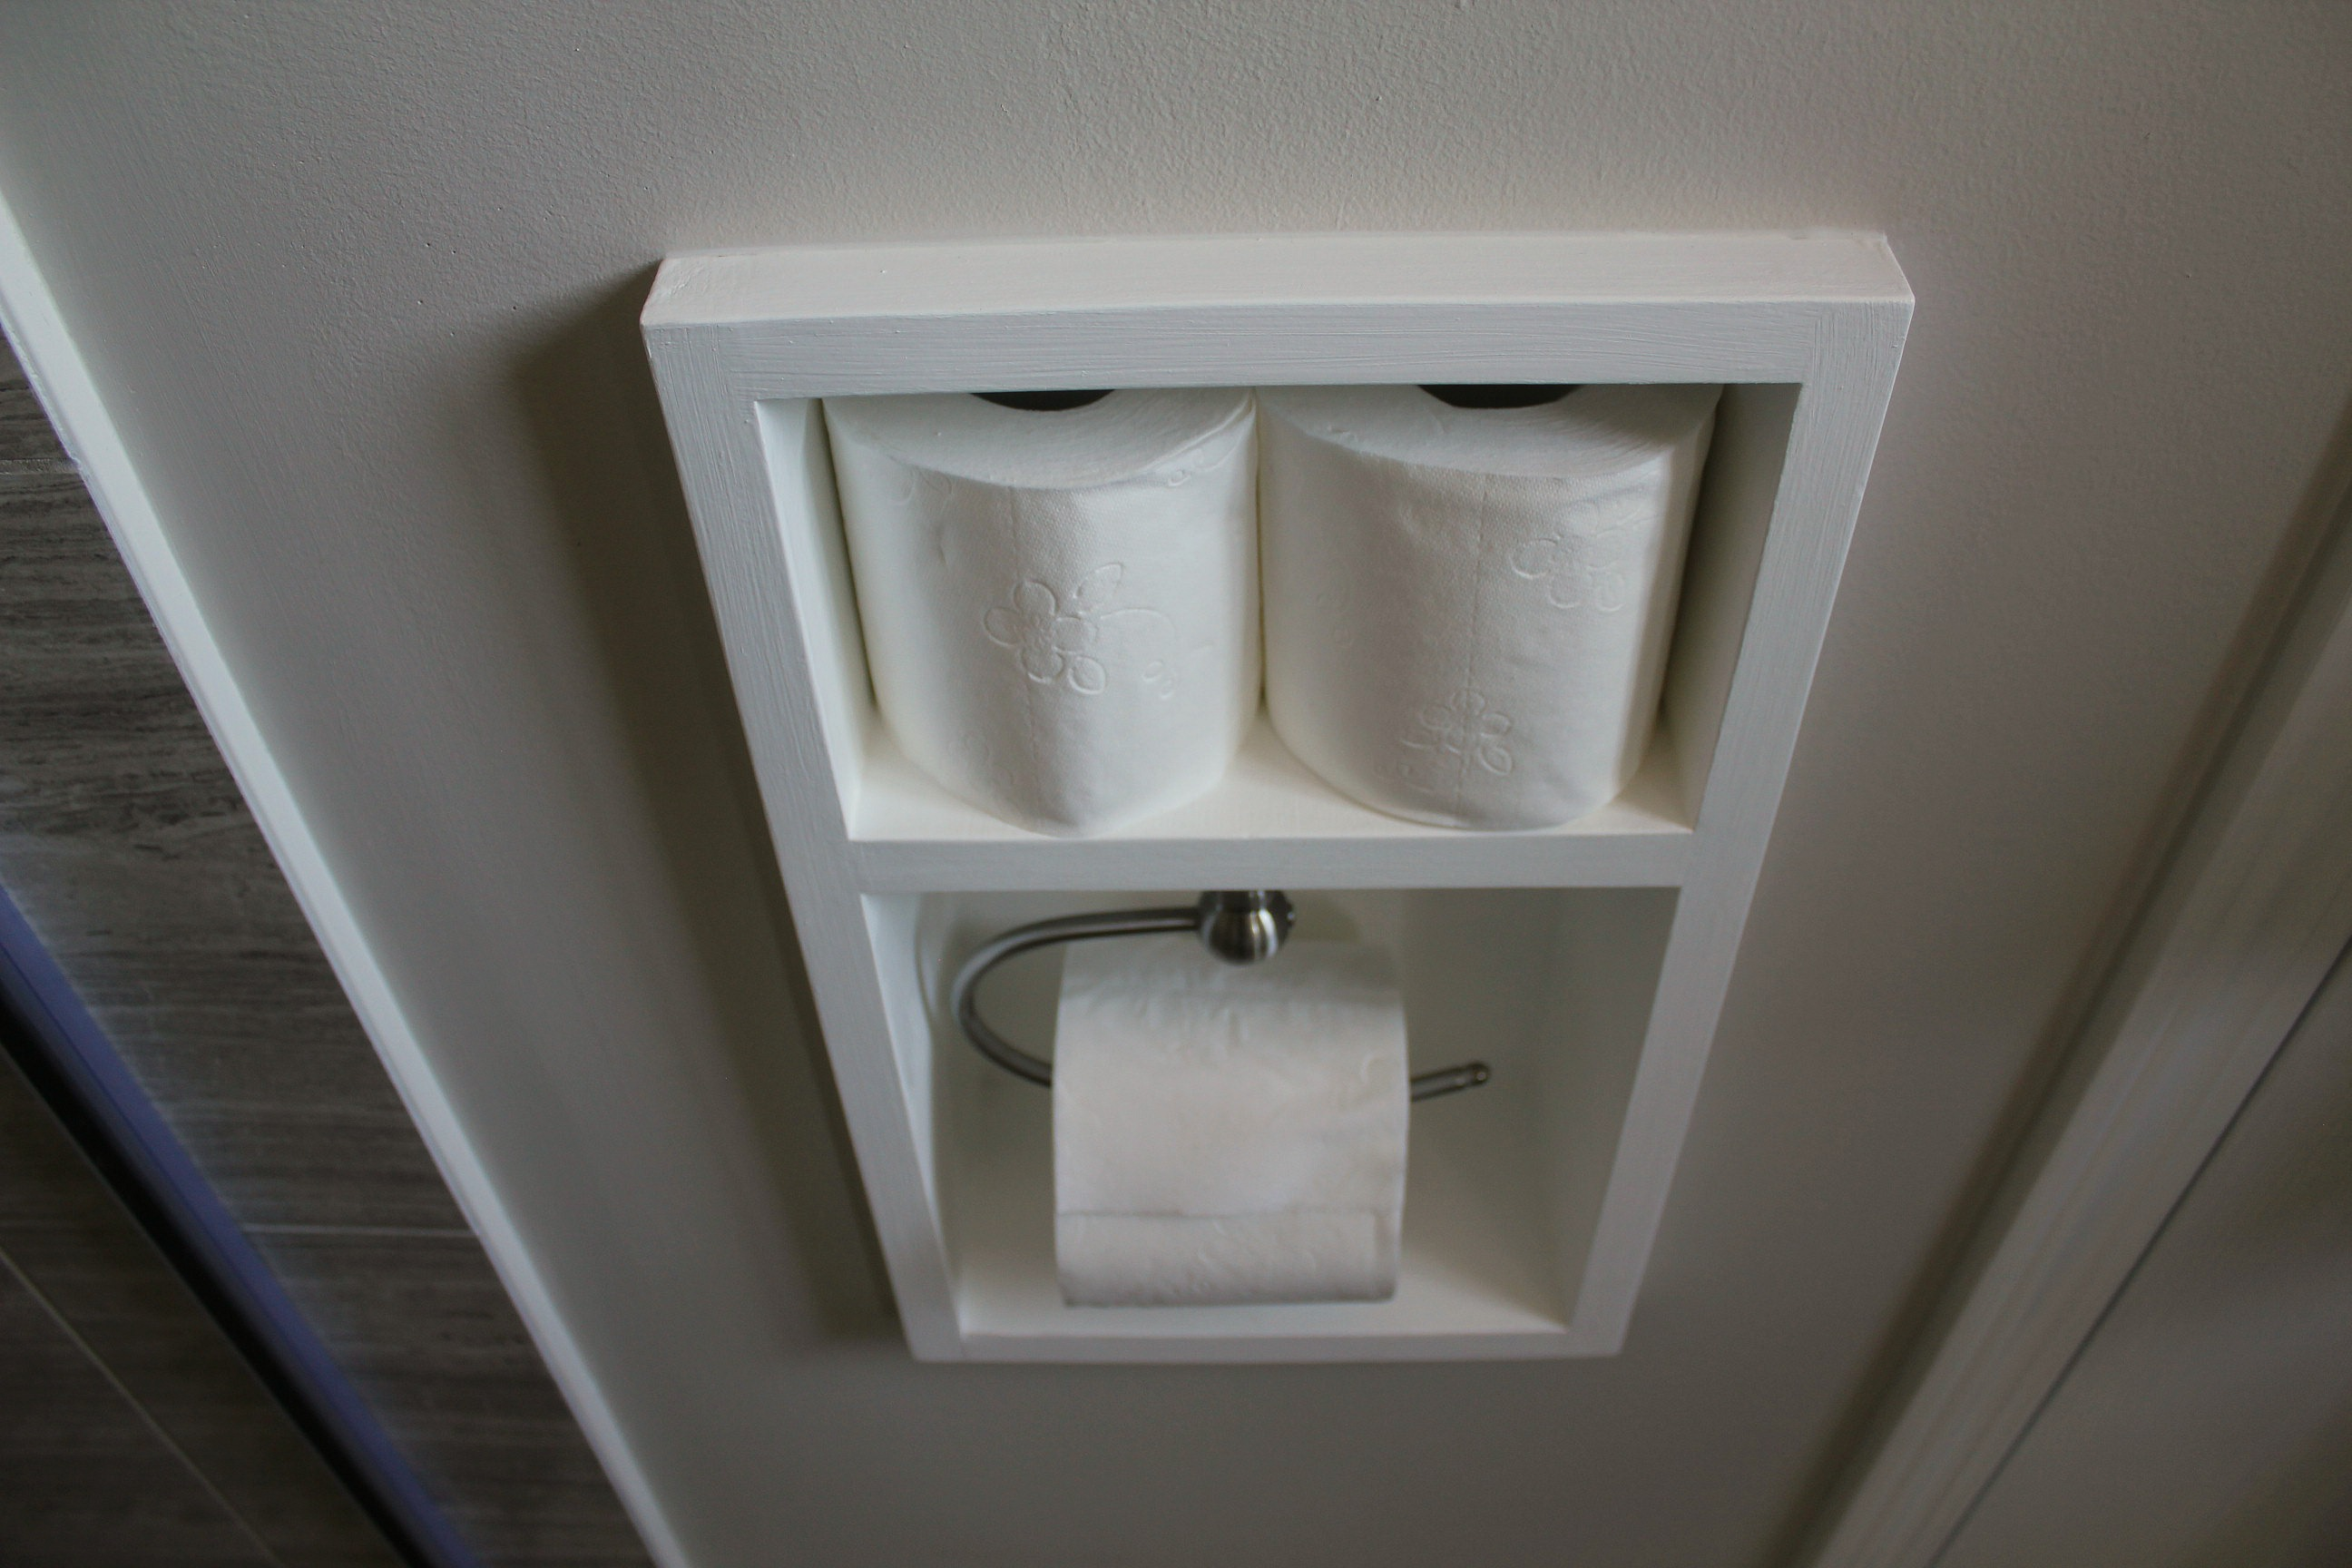 Concealed Toilet Paper Holder Turtles And Tails Recessed Toilet Paper Holder Aka